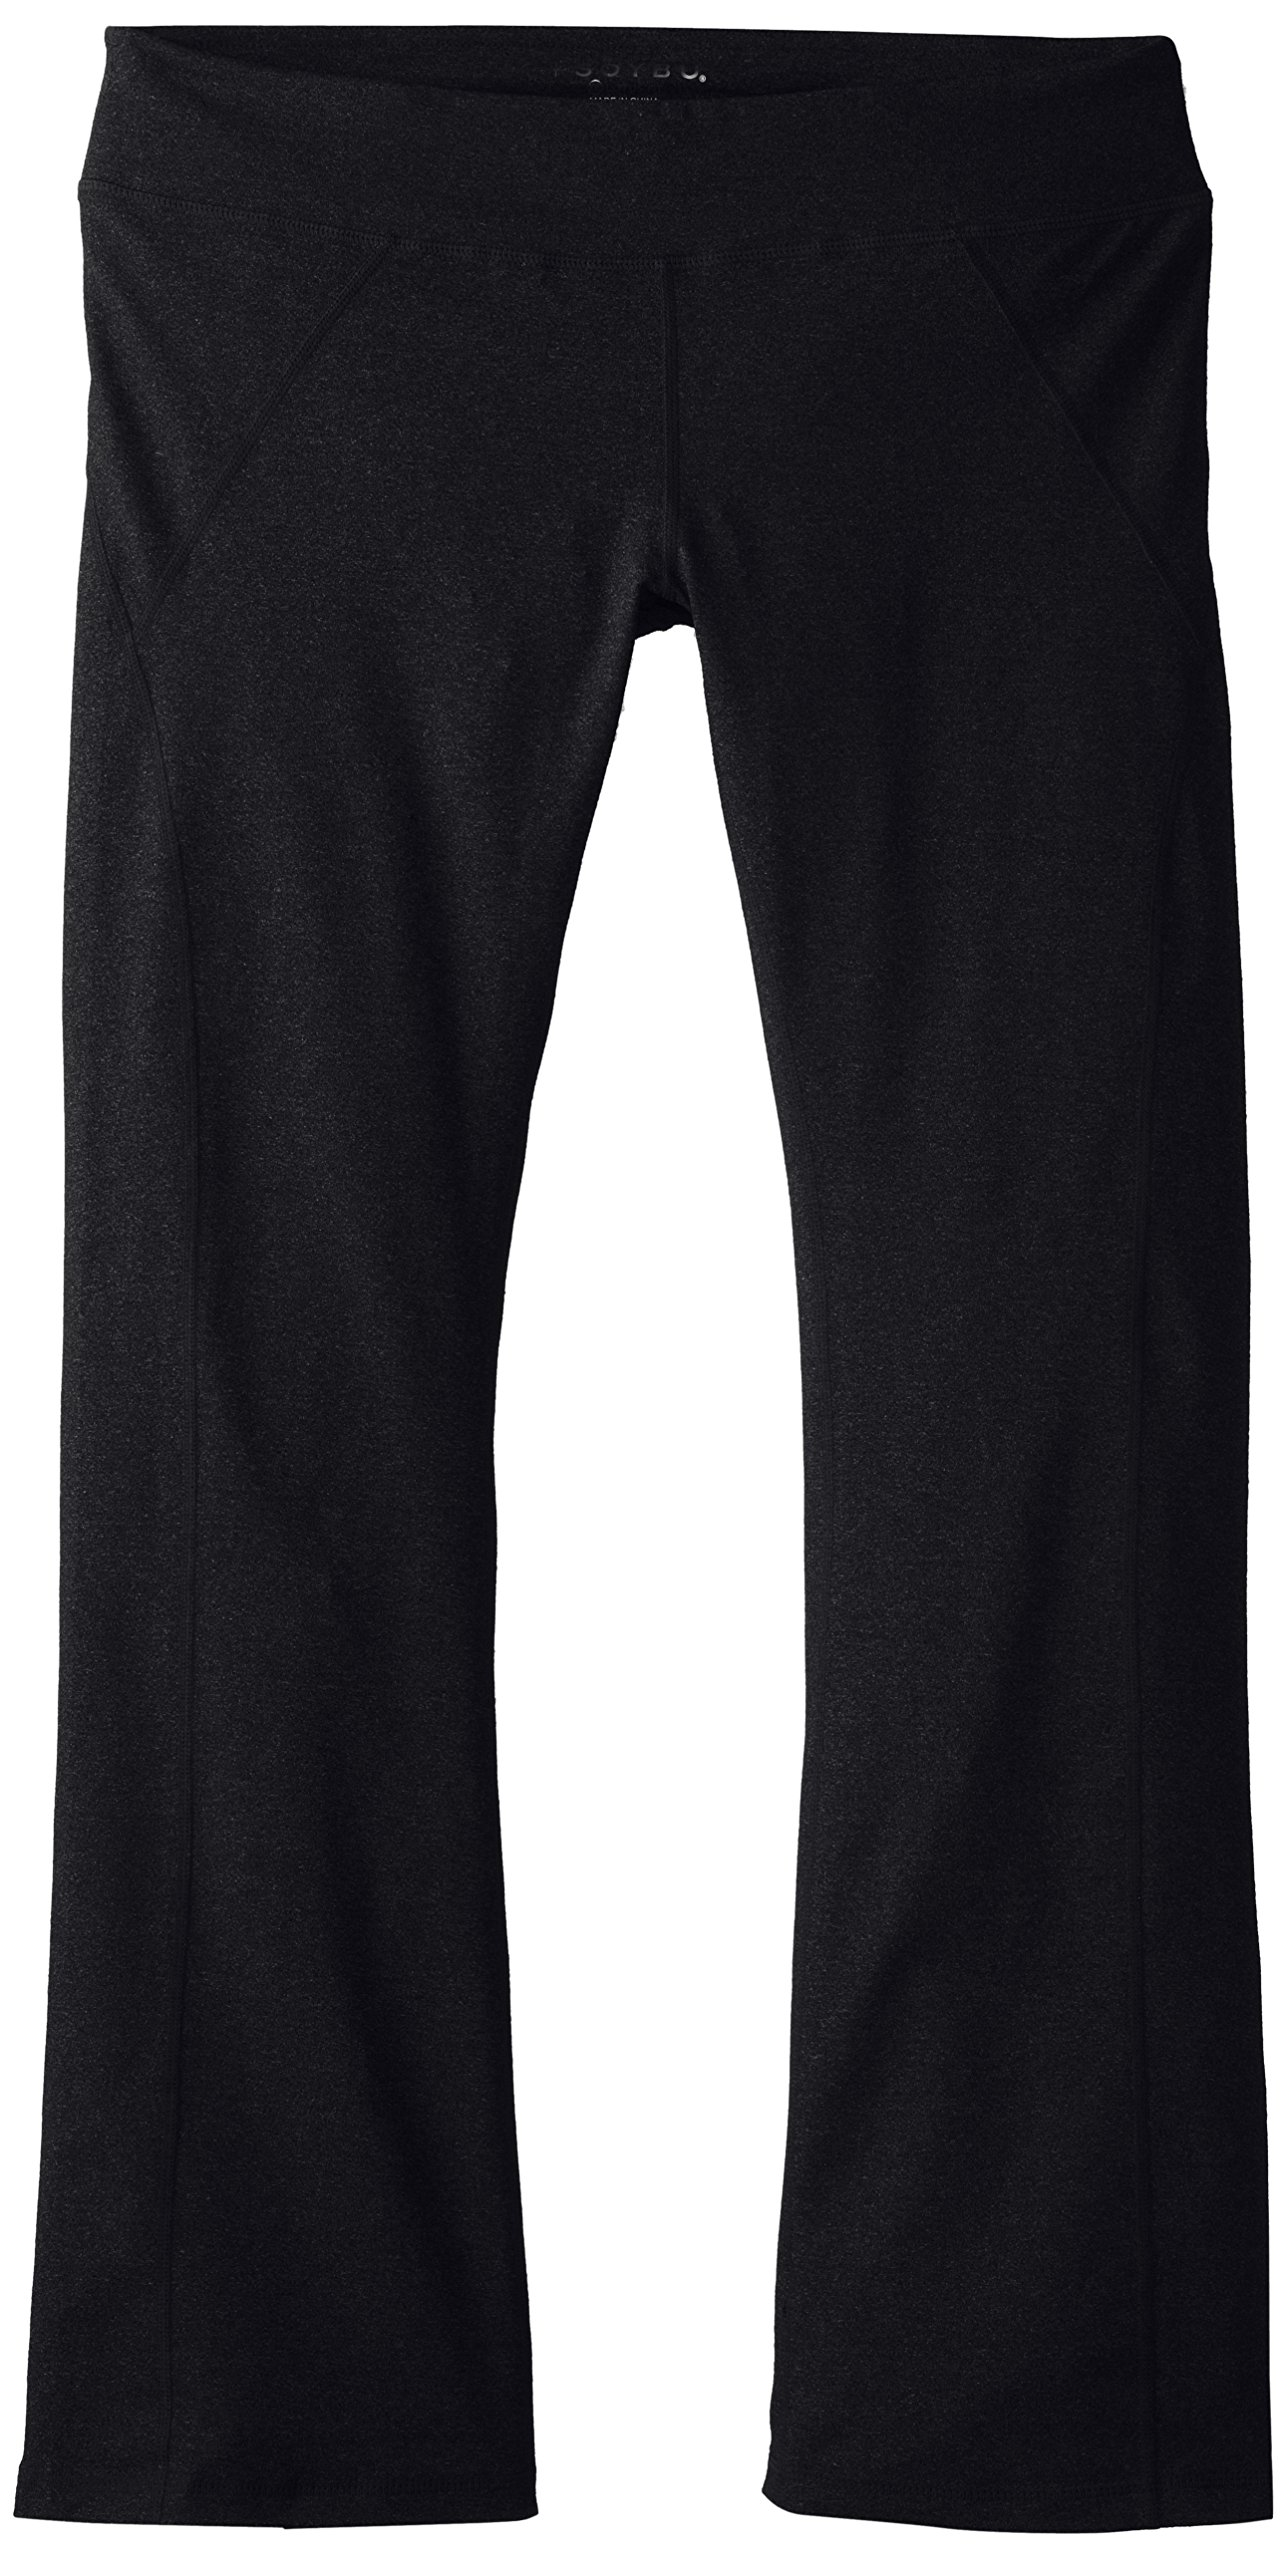 Soybu Women's Killer Caboose Pant-Tall, Black, X-Small